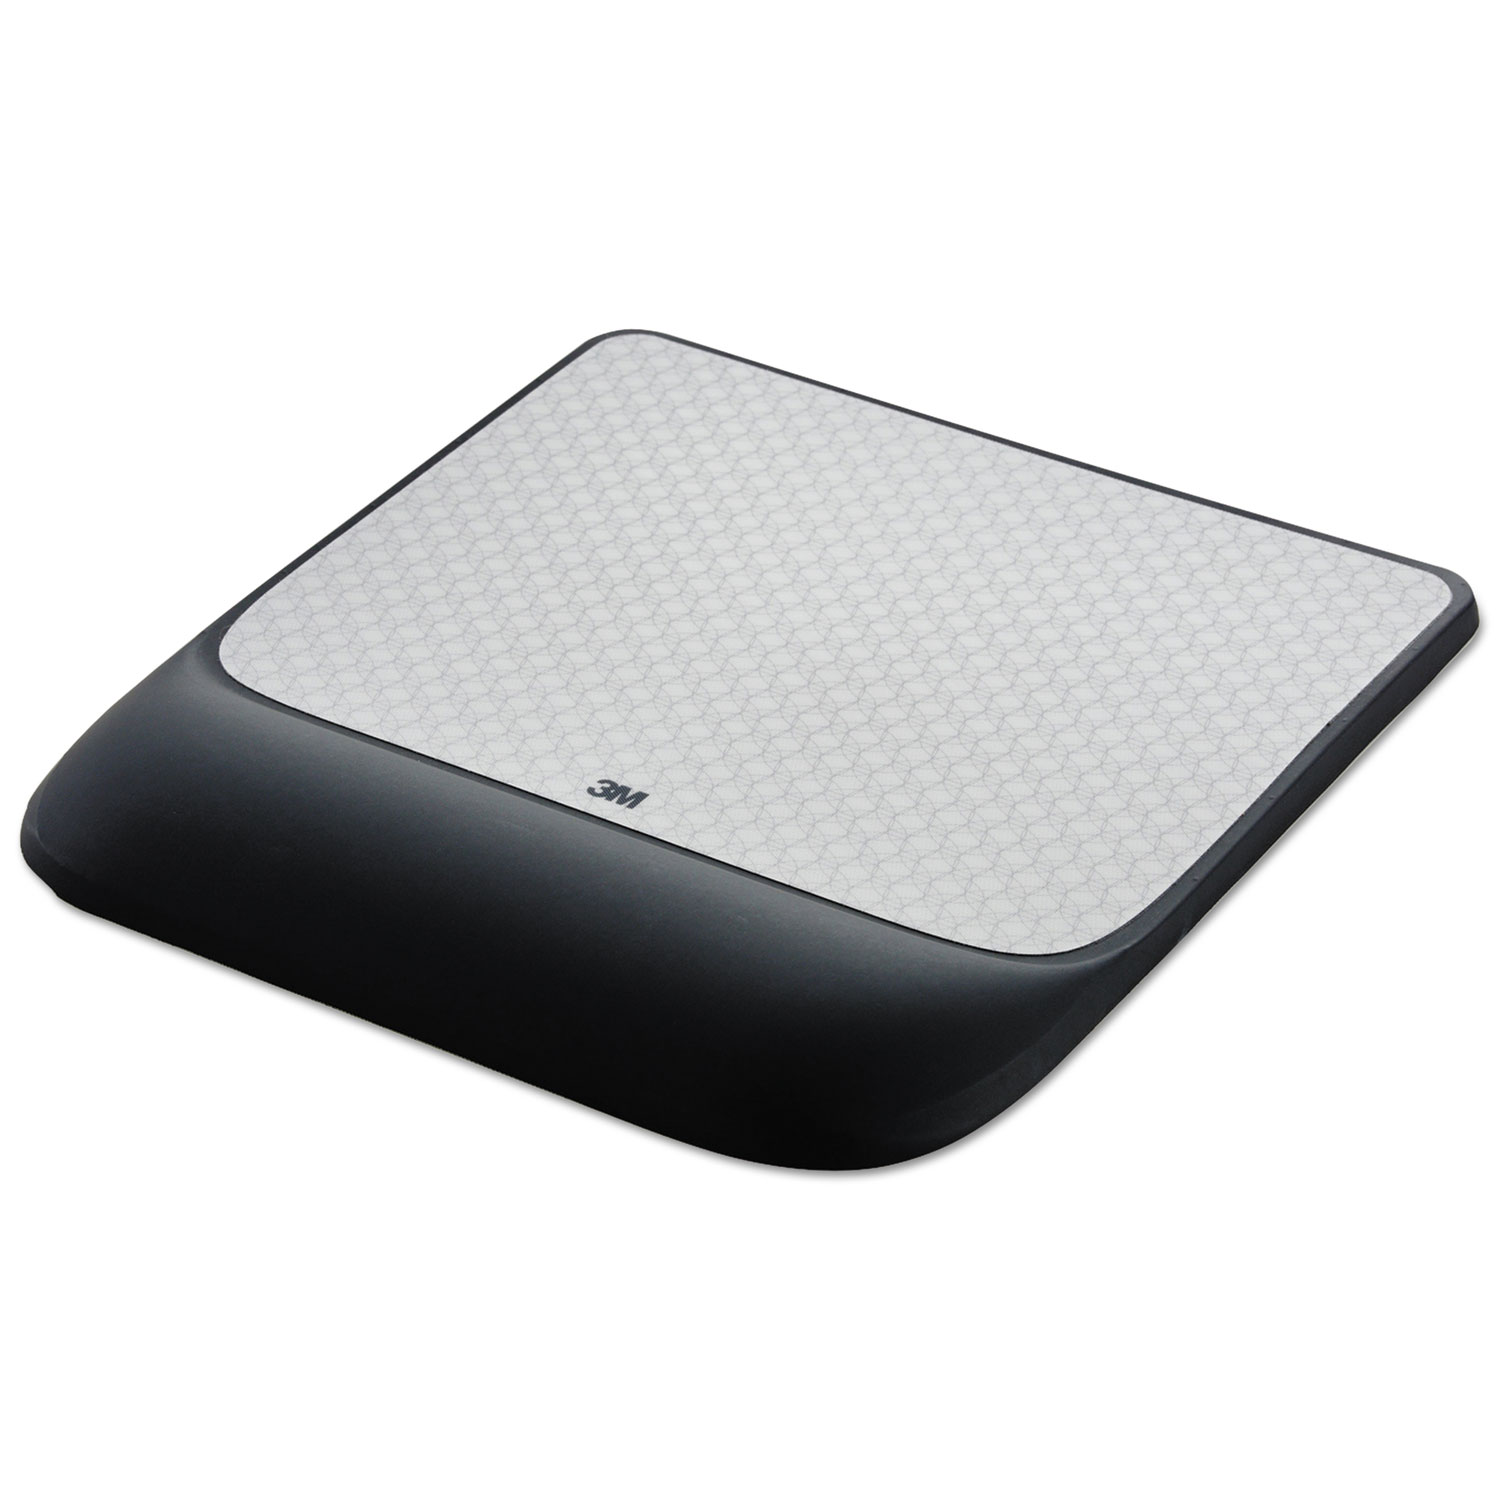 Mouse Pad w/Precise Mousing Surface w/Gel Wrist Rest, 8 1/2x 9x 3/4, Solid Color